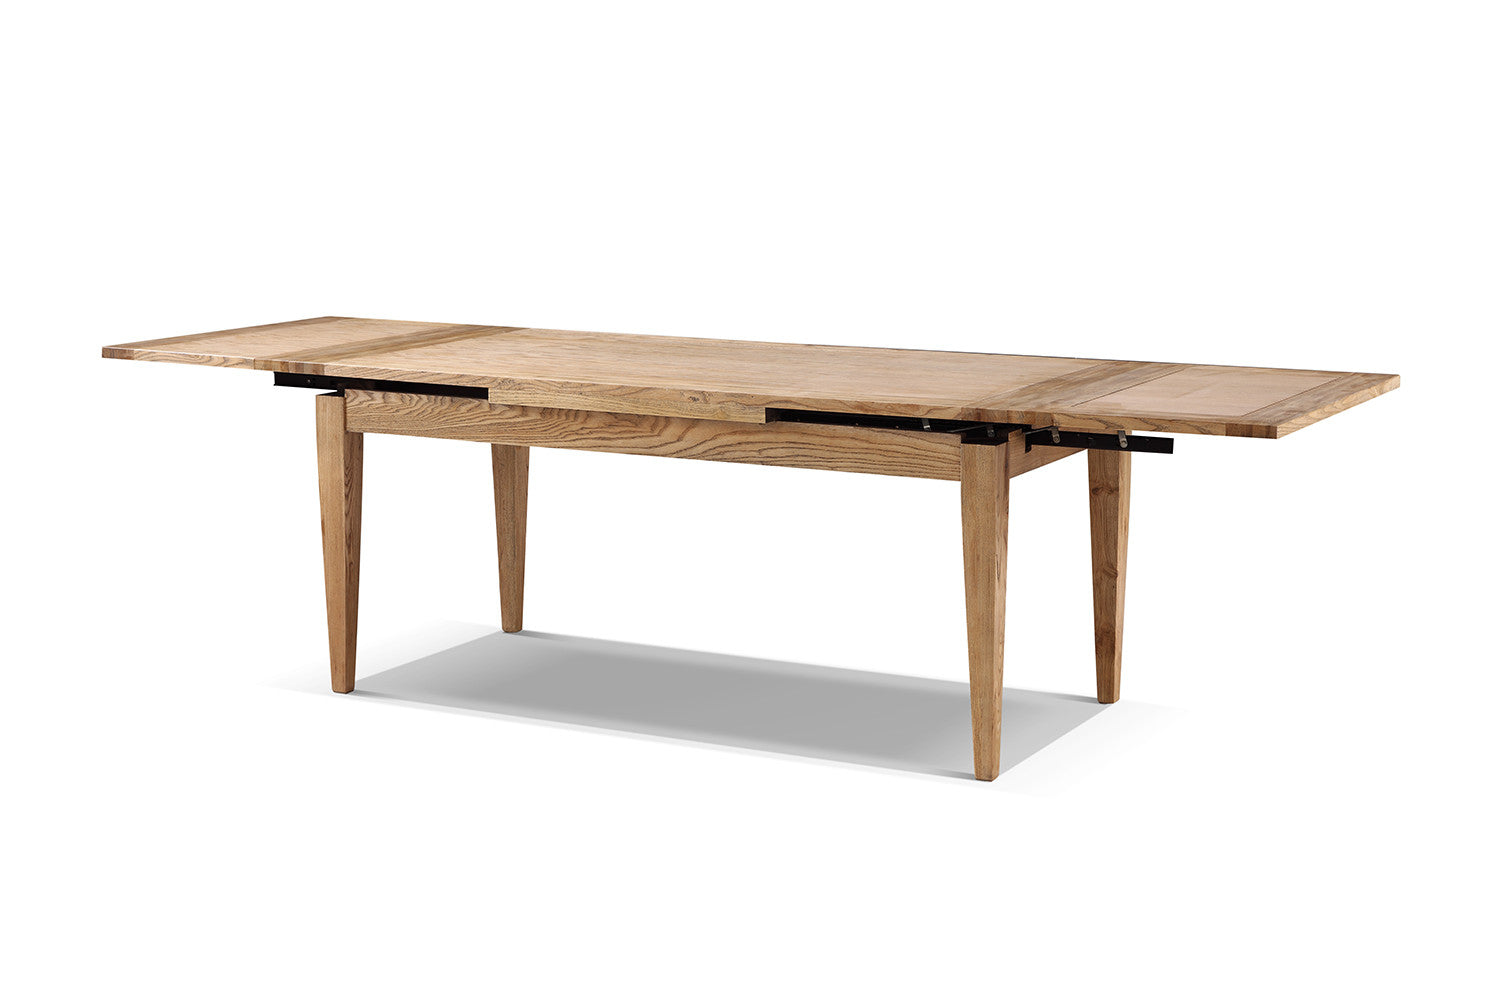 Table manger cottage en bois extensible rose moore - Dimensions table a manger ...